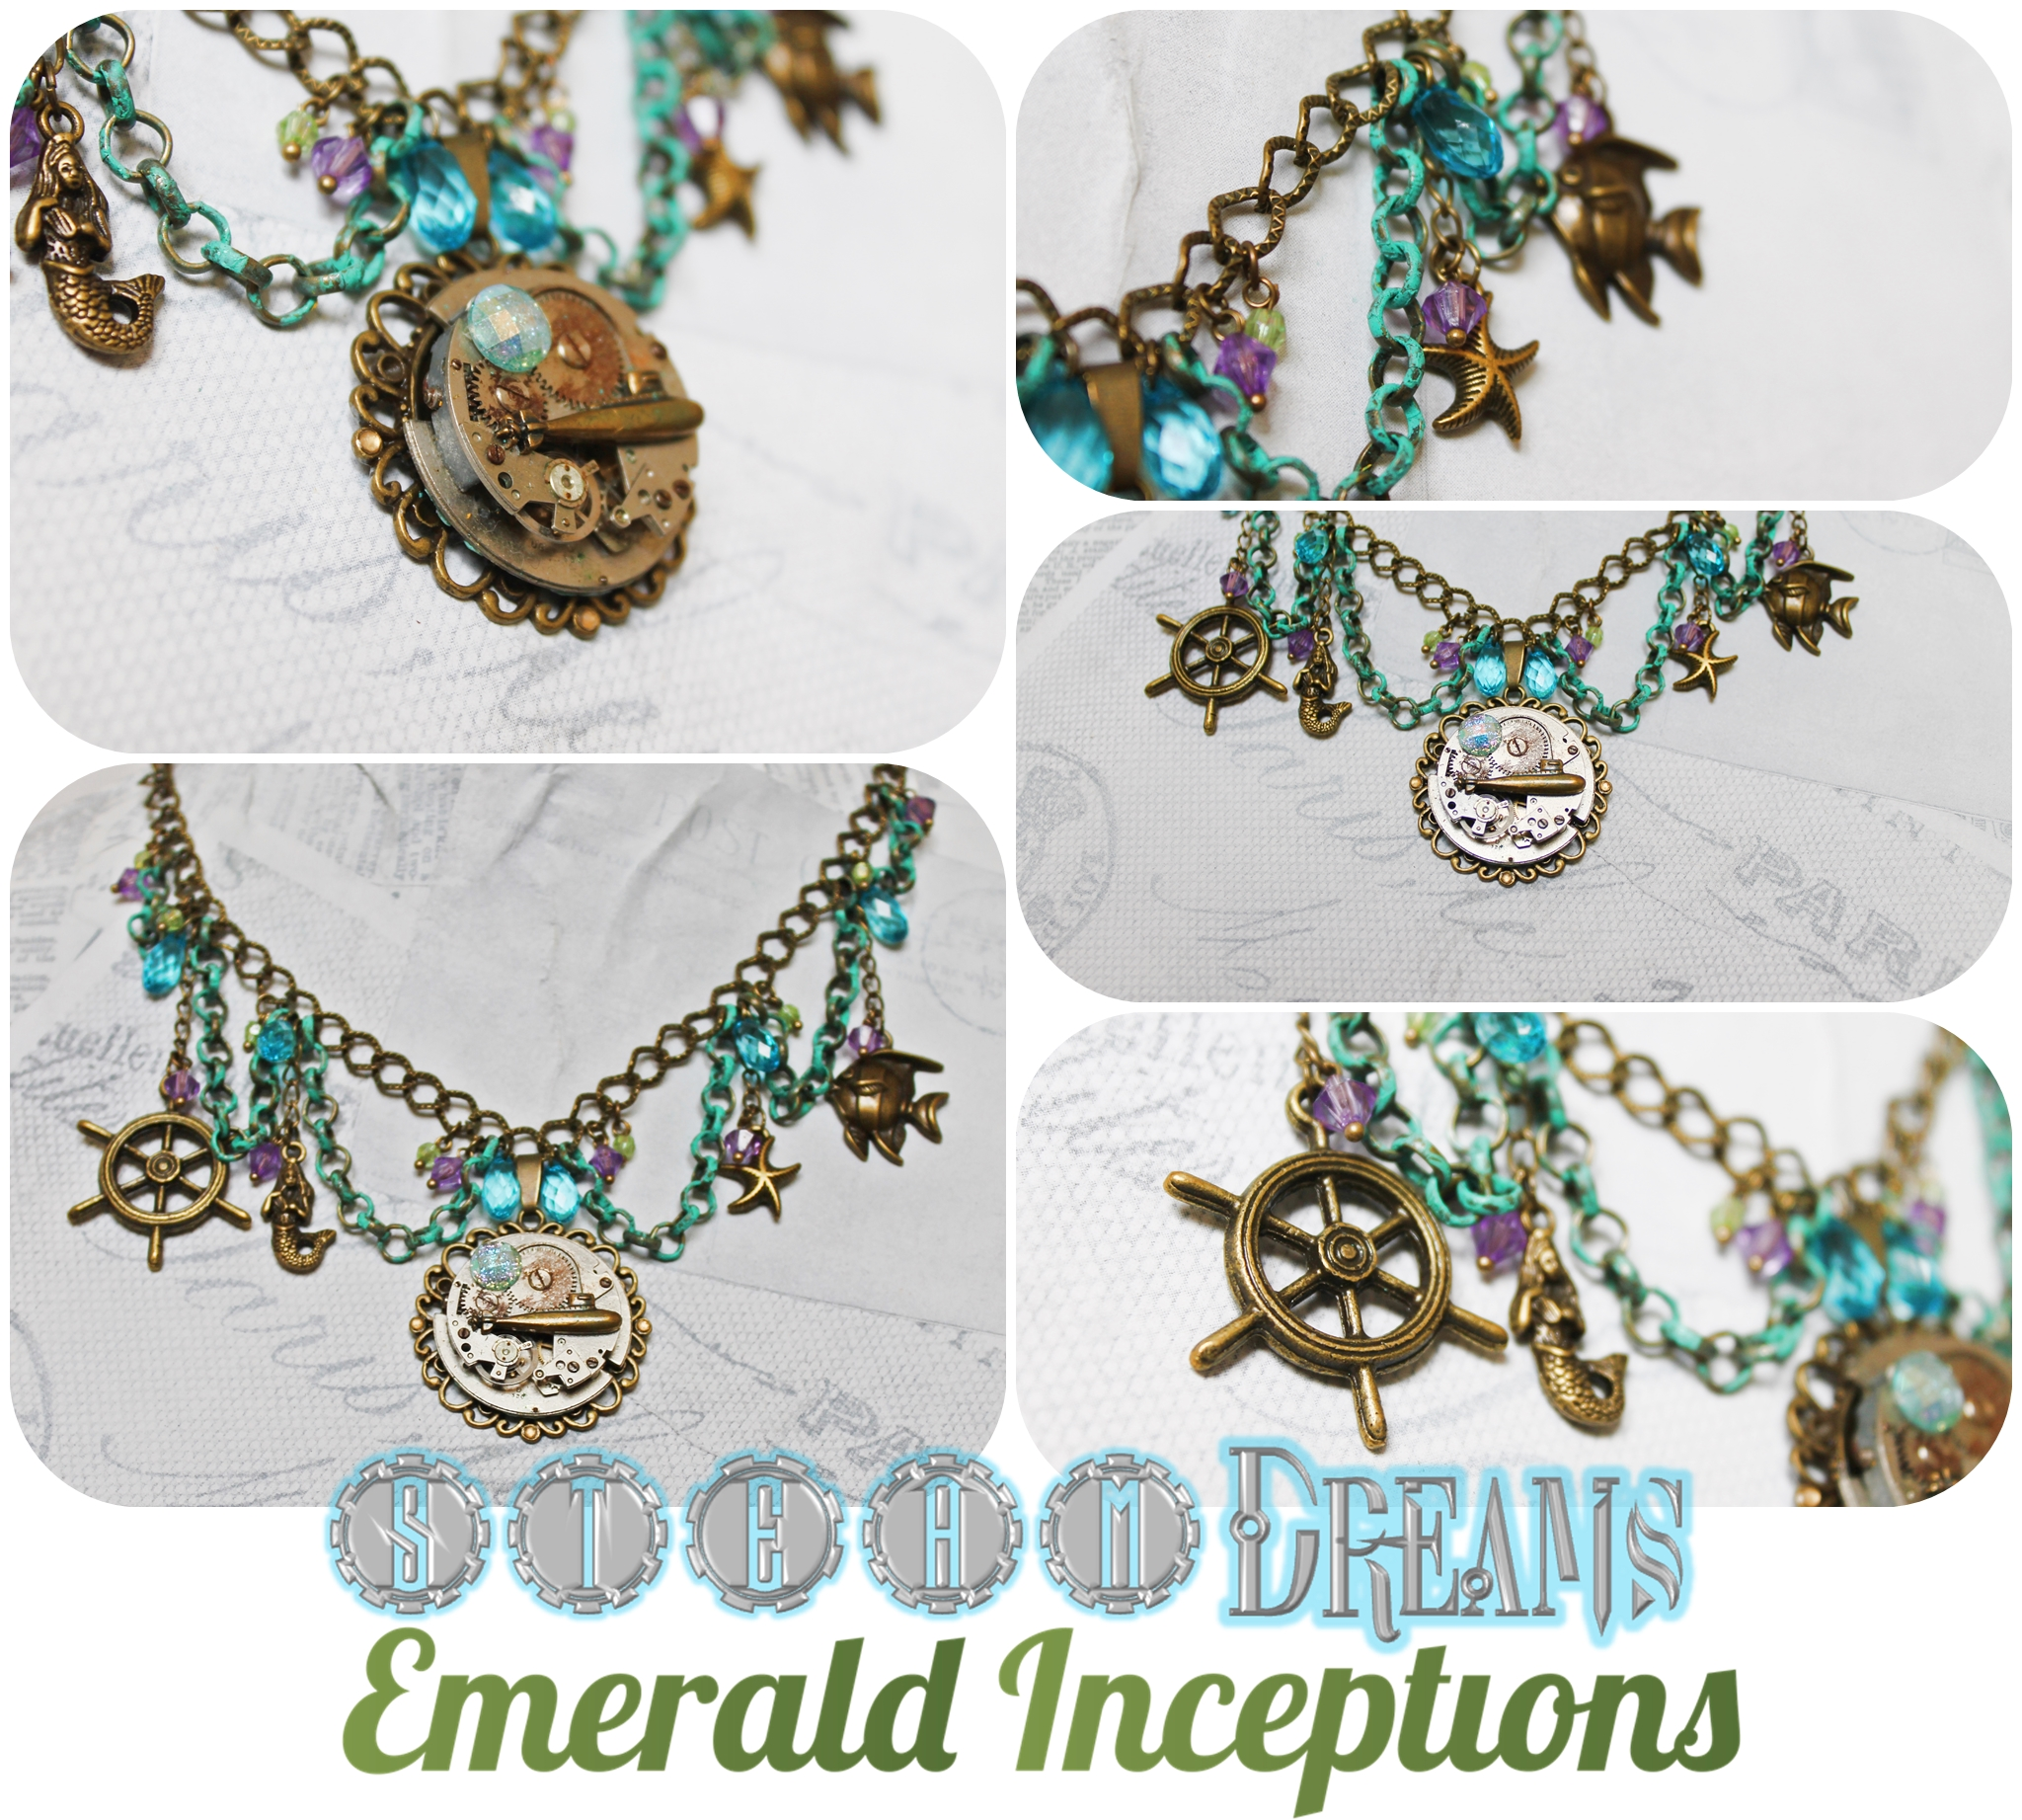 steampunk_necklace_nautical_siren_dreams_necklaces_5.jpg